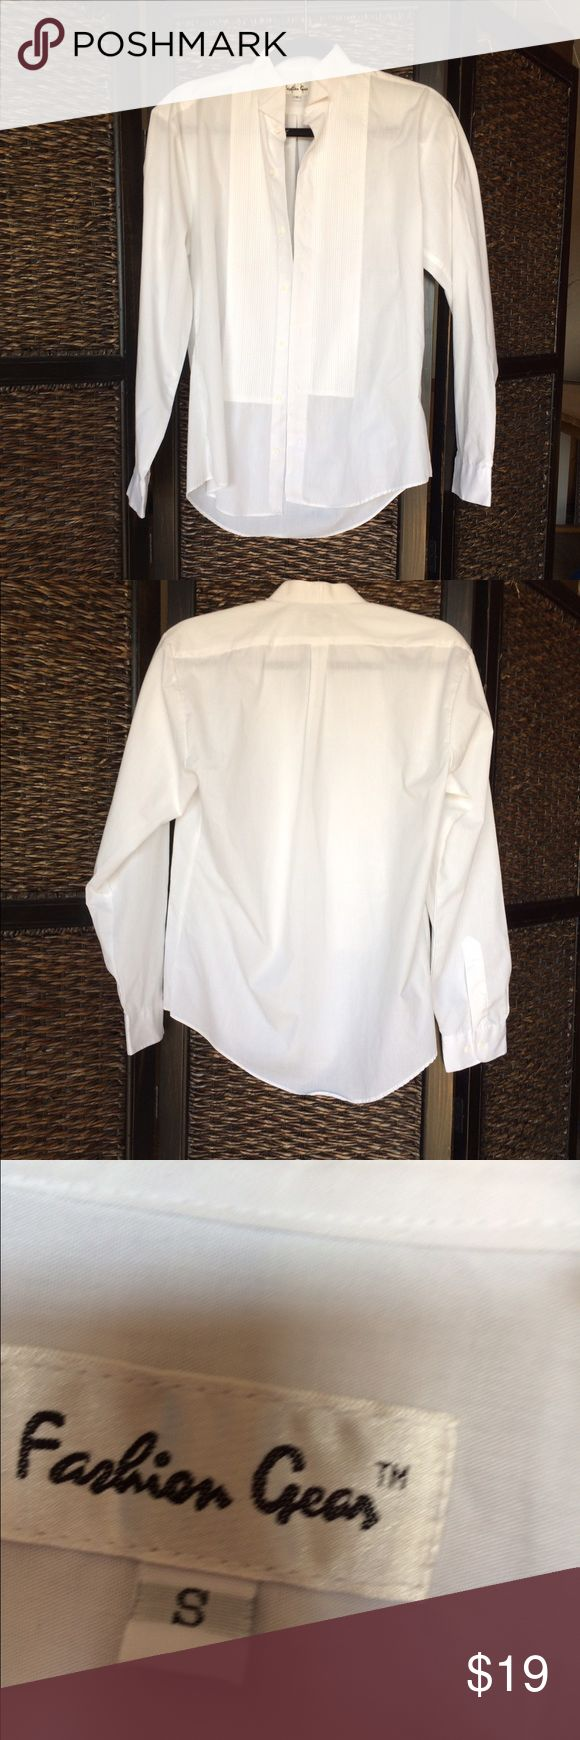 Men's small tux shirt. No flaws, great condition! Perfect for a upcoming high school dances/prom/weddings fashion gear Shirts Dress Shirts